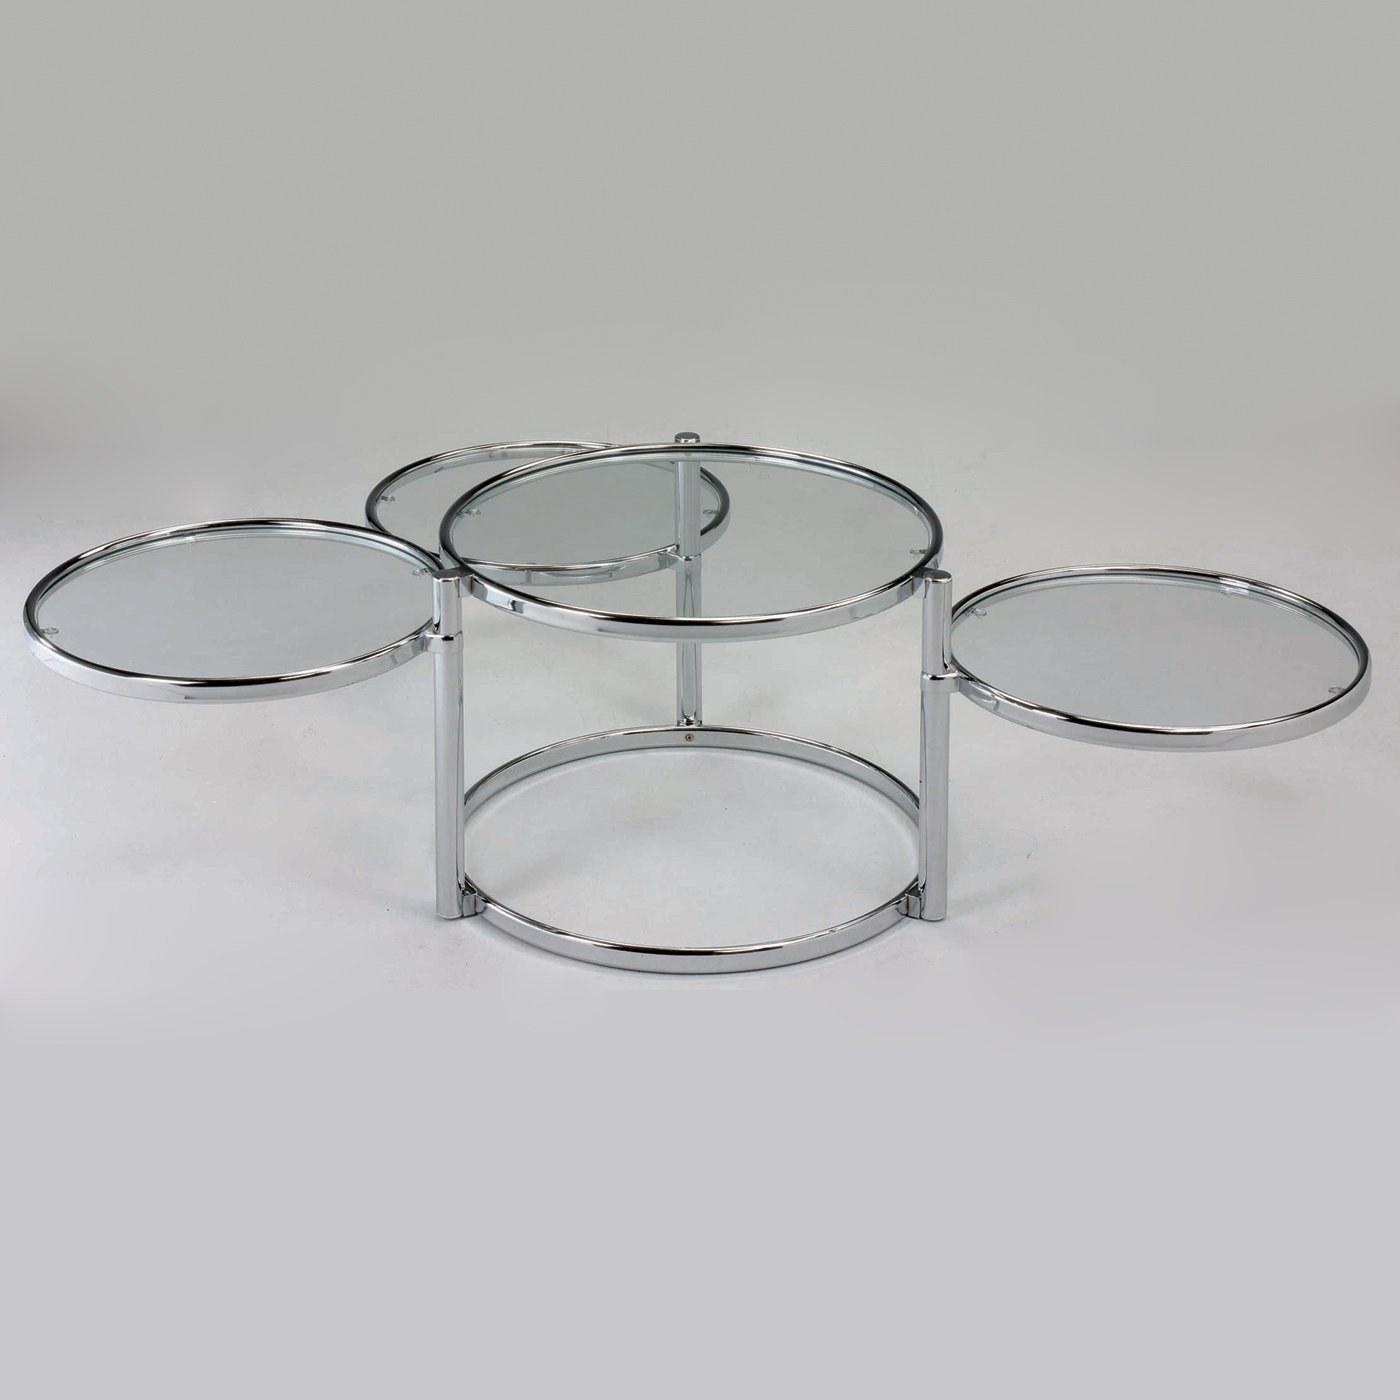 Cota 15 Coffee Table by New Spec